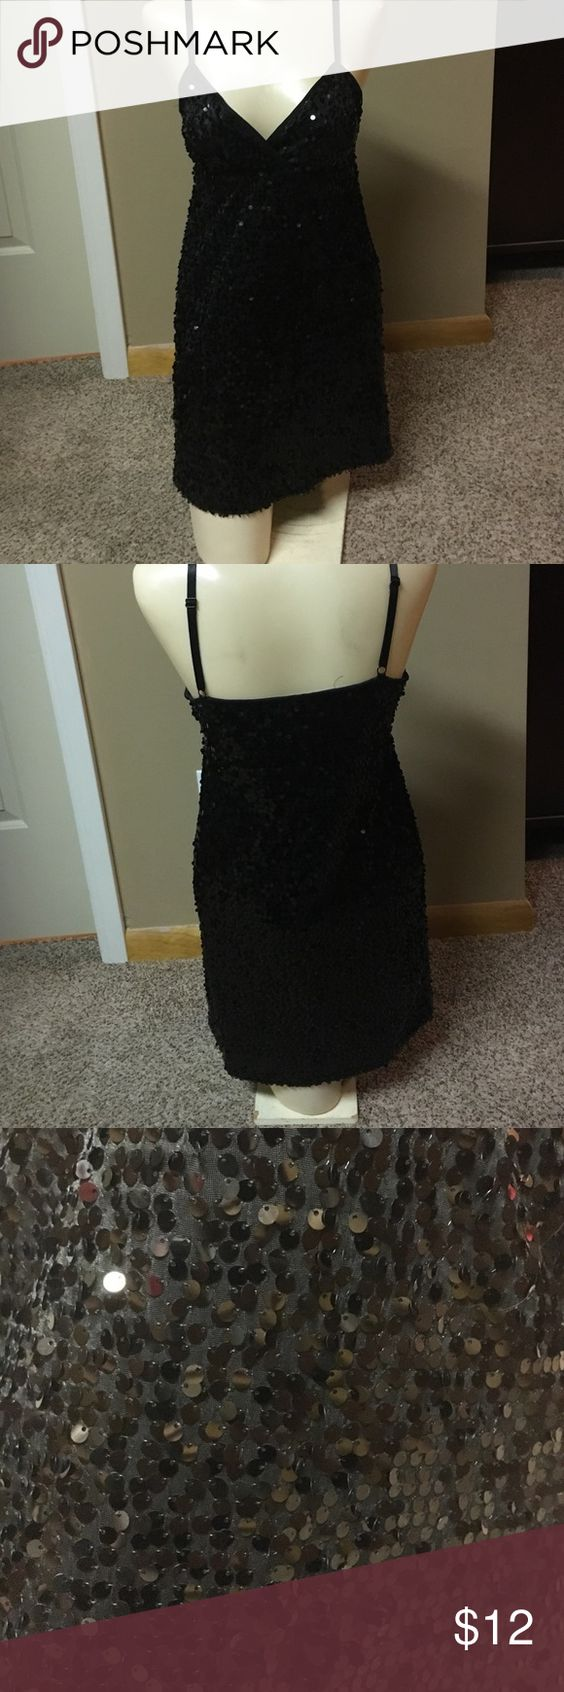 Mini sequins dress Forever 21 mini black sequins dress. Worn few times for parties and clubs. Forever 21 Dresses Mini